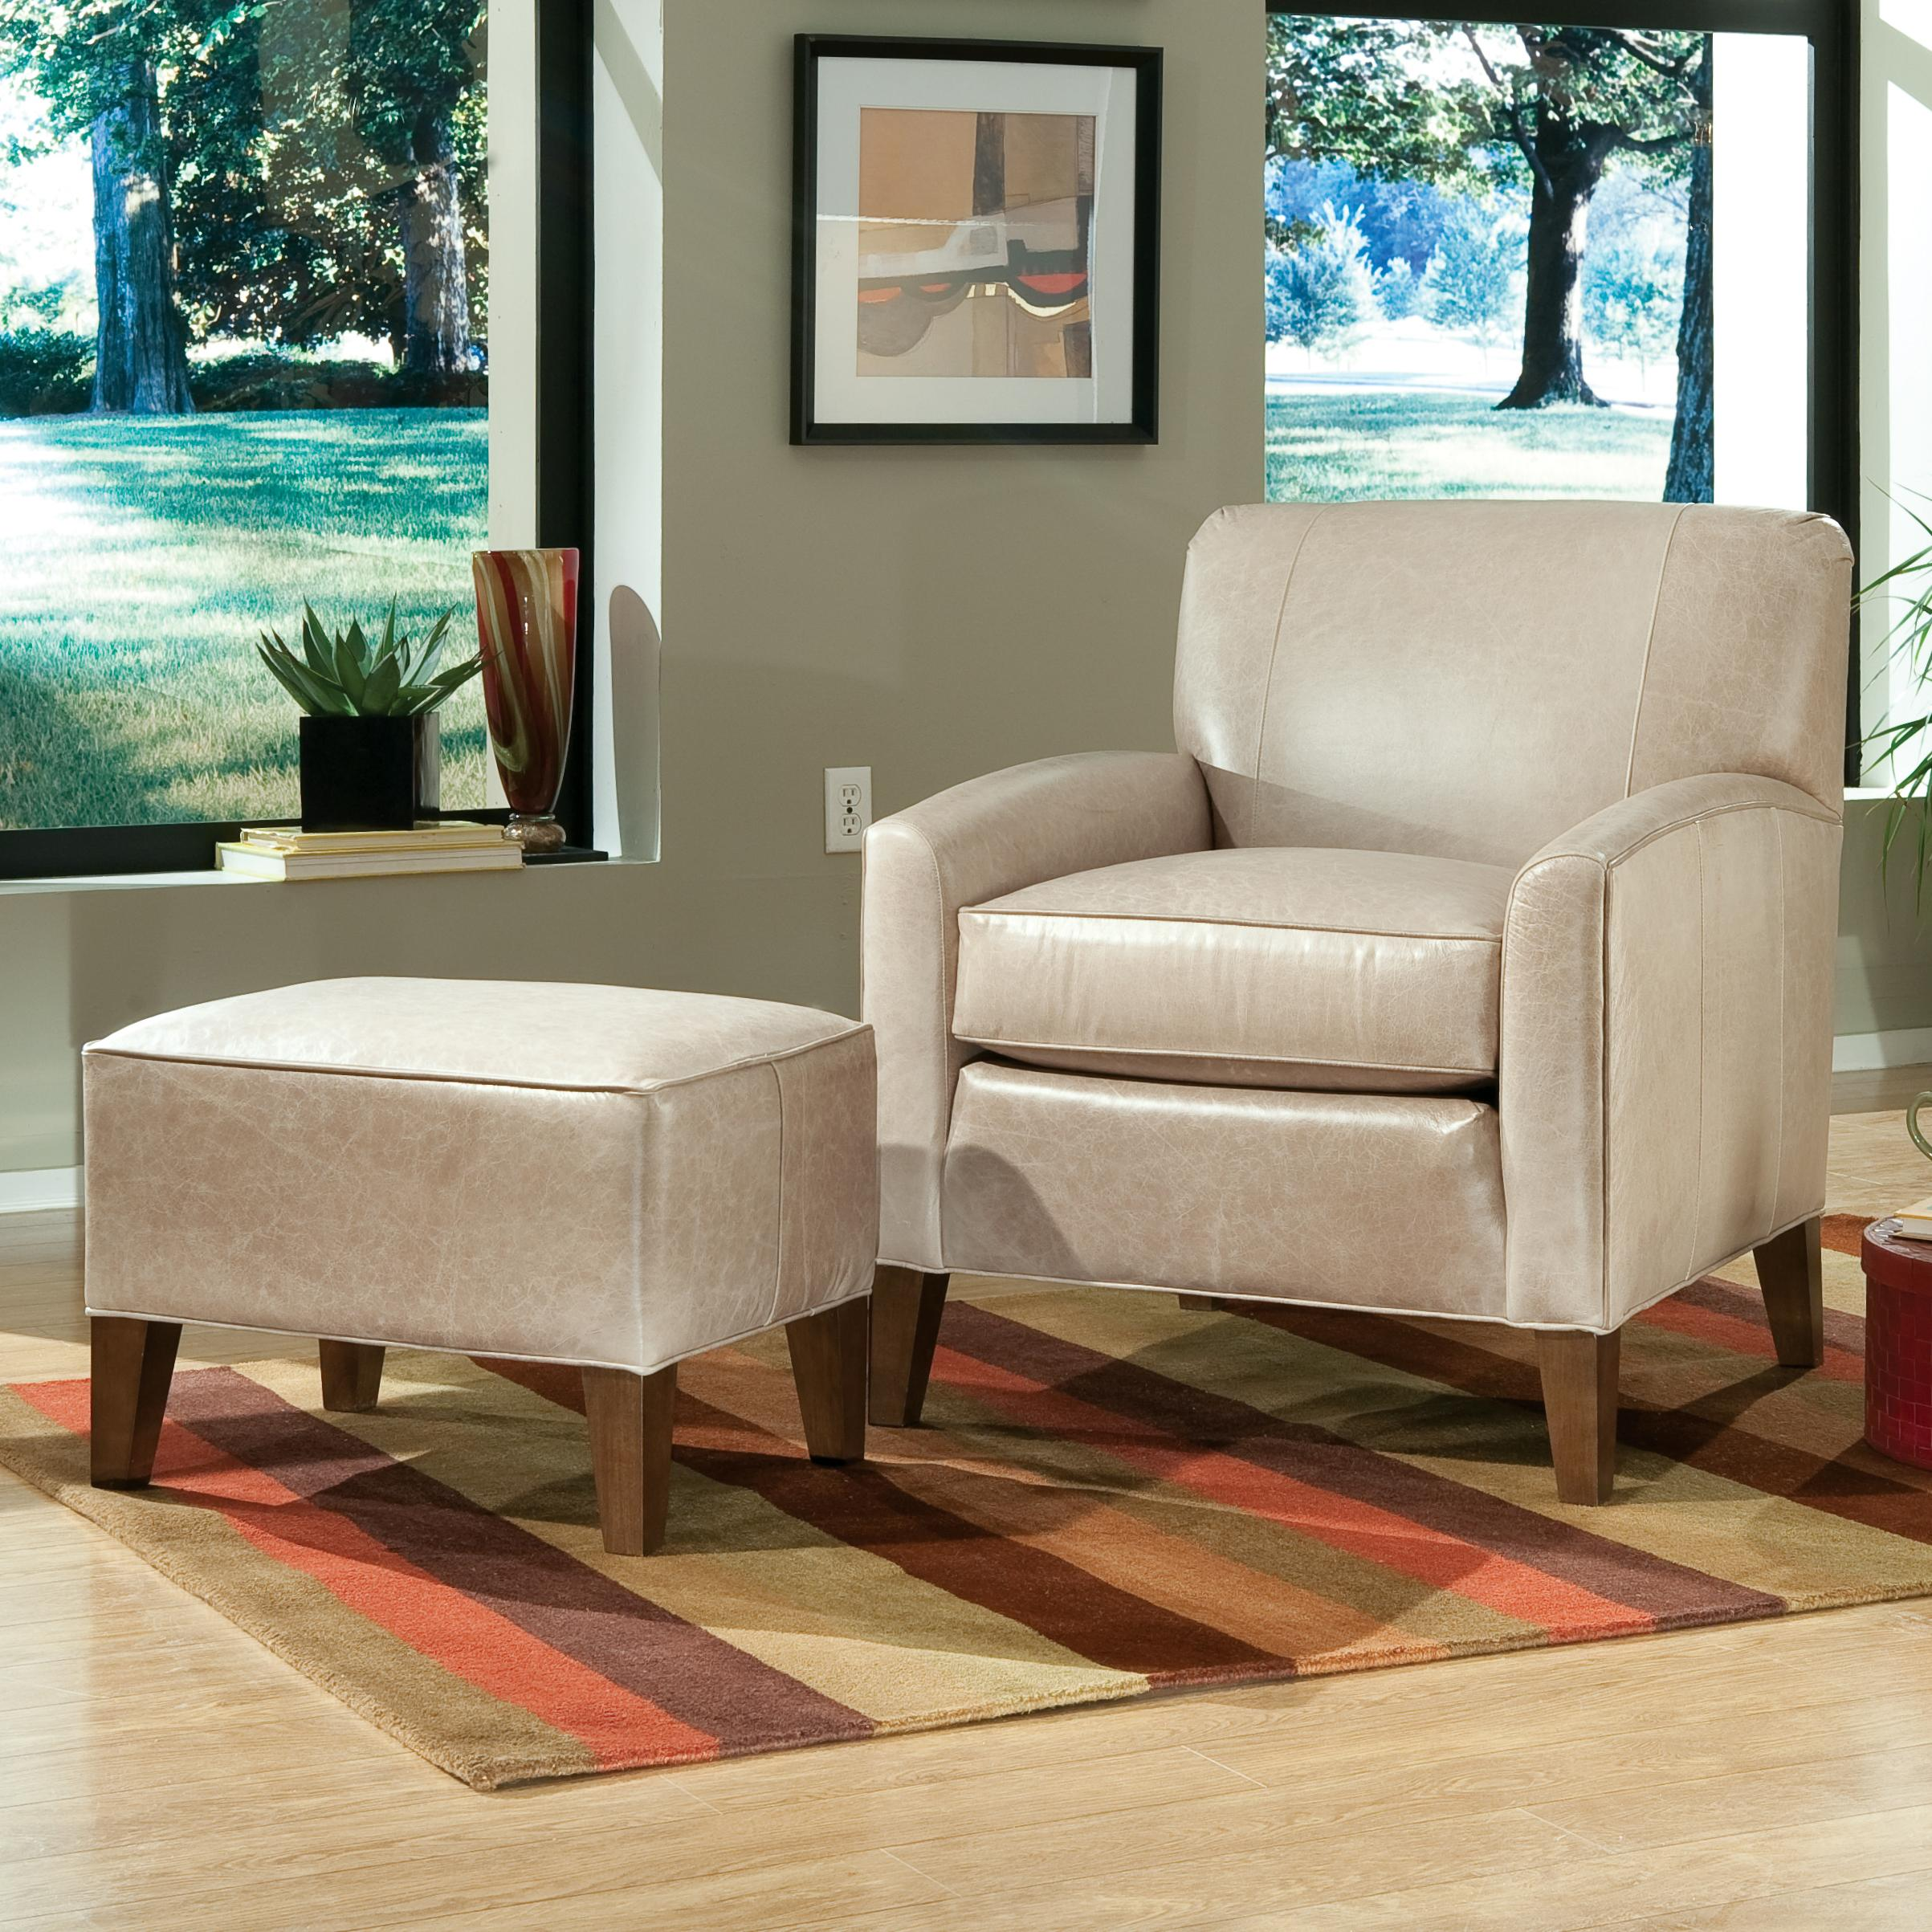 Accent Chairs and Ottomans SB Contemporary Chair and Ottoman by Smith Brothers at Mueller Furniture